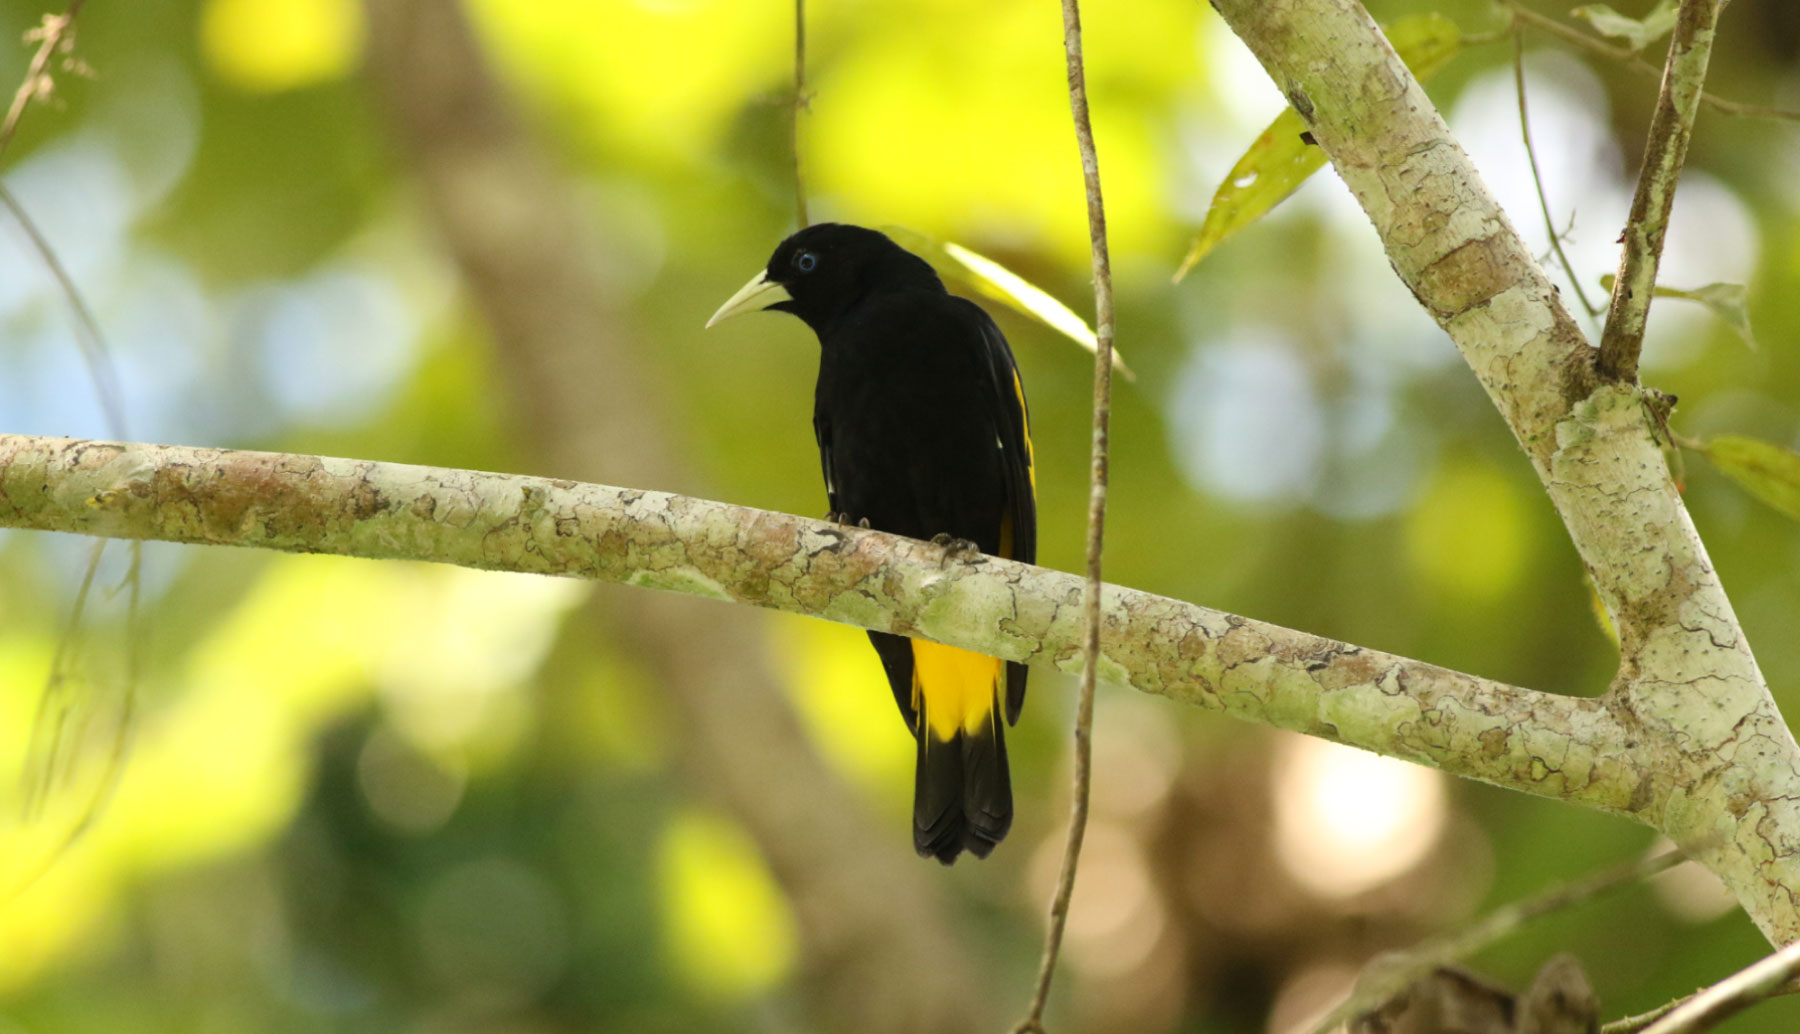 Black bird in a tree in Ecuador